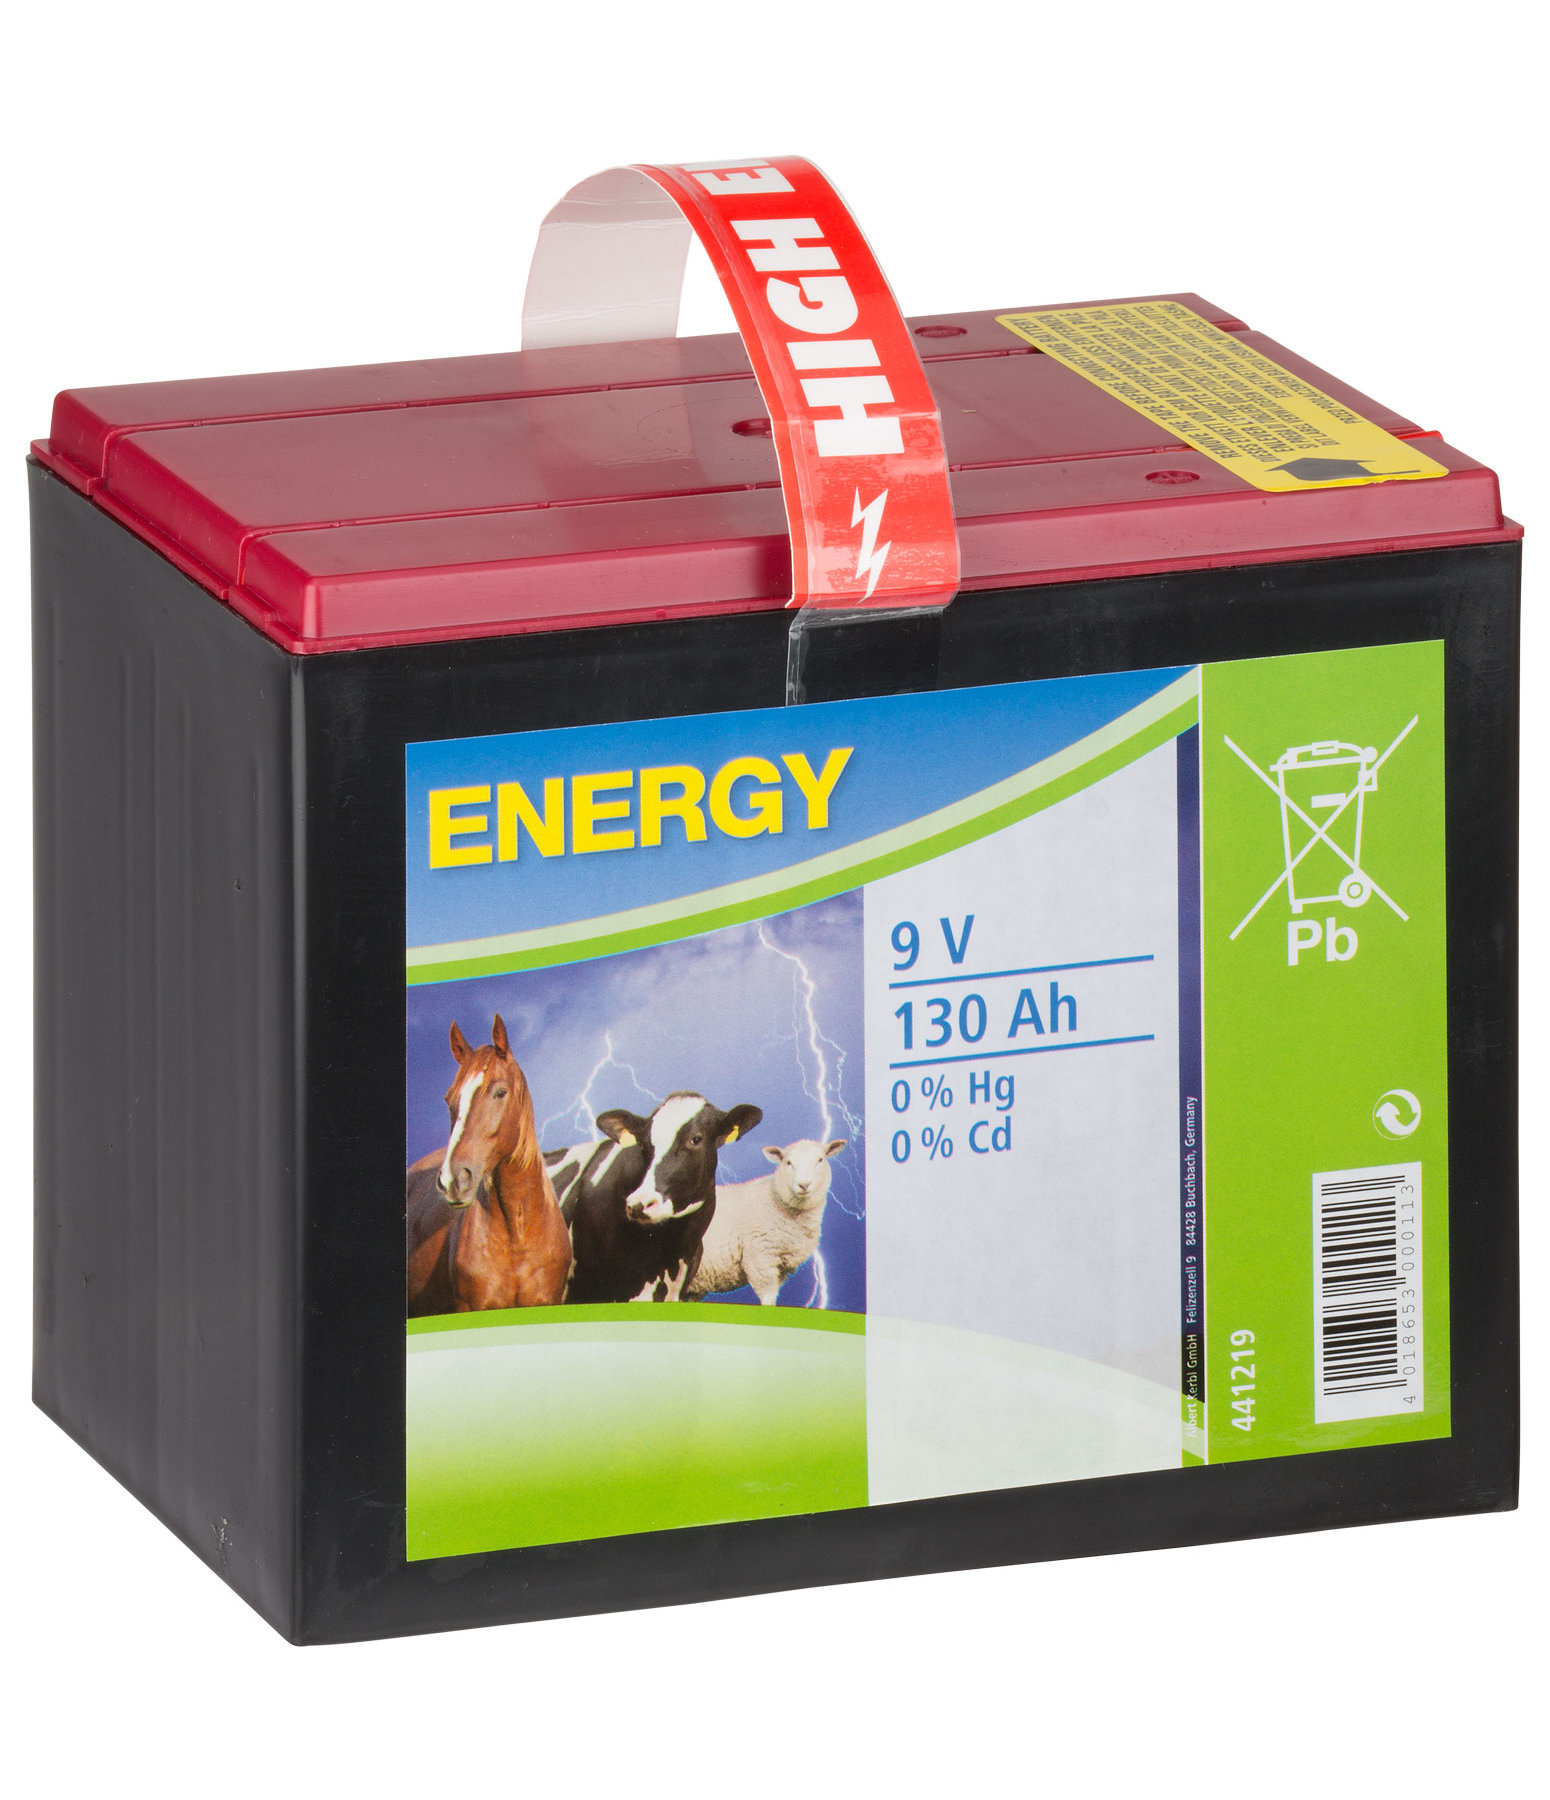 9 V Dry Cell Battery 130 Ah